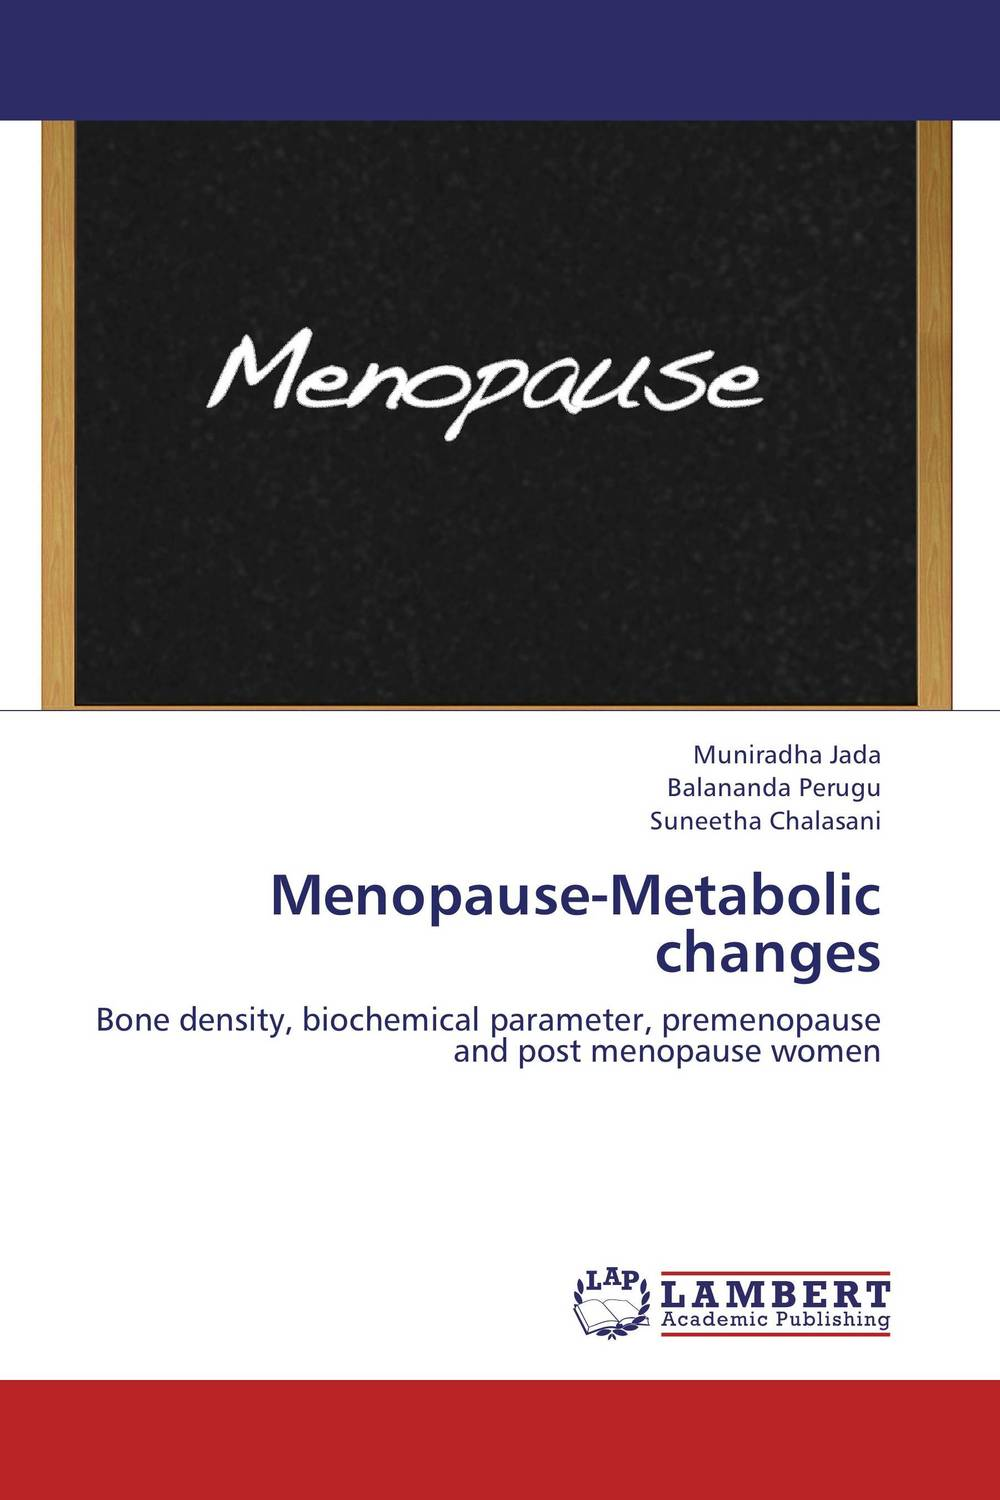 Menopause-Metabolic changes в сорокин обелиск